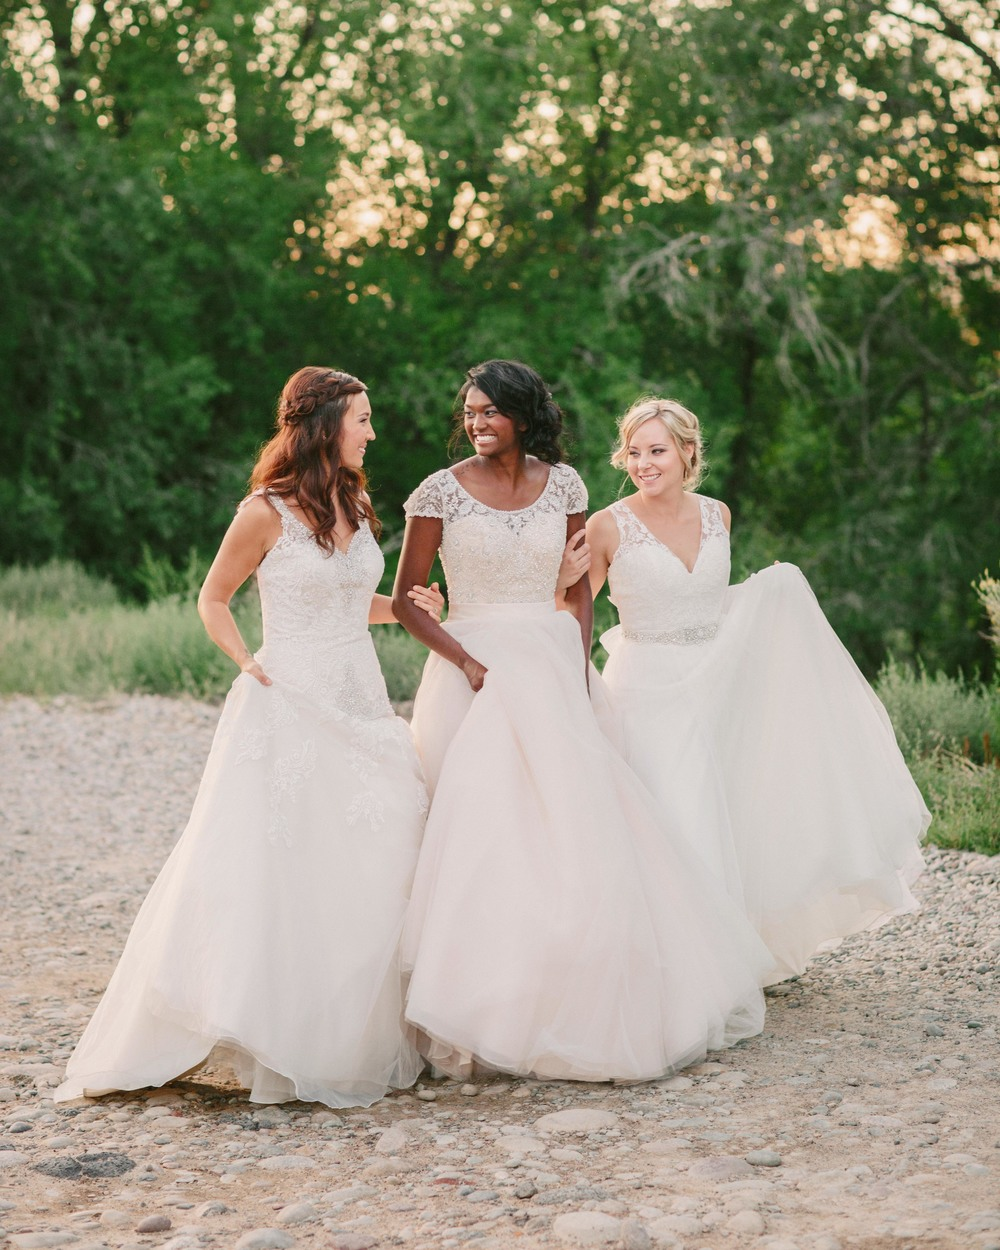 Wedding dresses by Annelise Bridal Boutique / Photo: Cat Mayer Studio